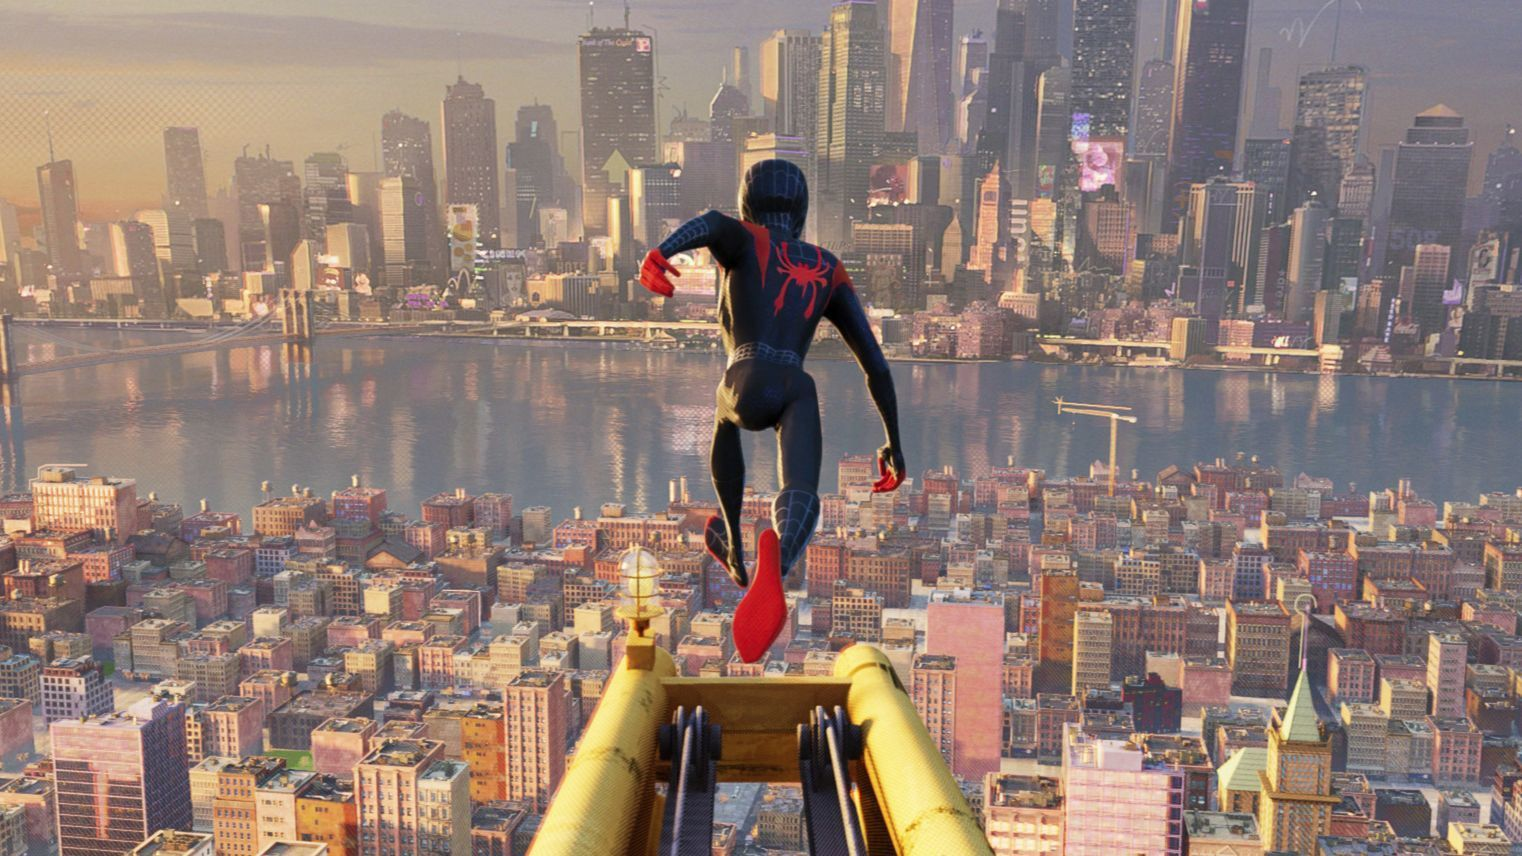 'Spider-Man: Into the Spider-Verse' tops the box office as 'The Mule' and 'Mortal Engines' land among the top five